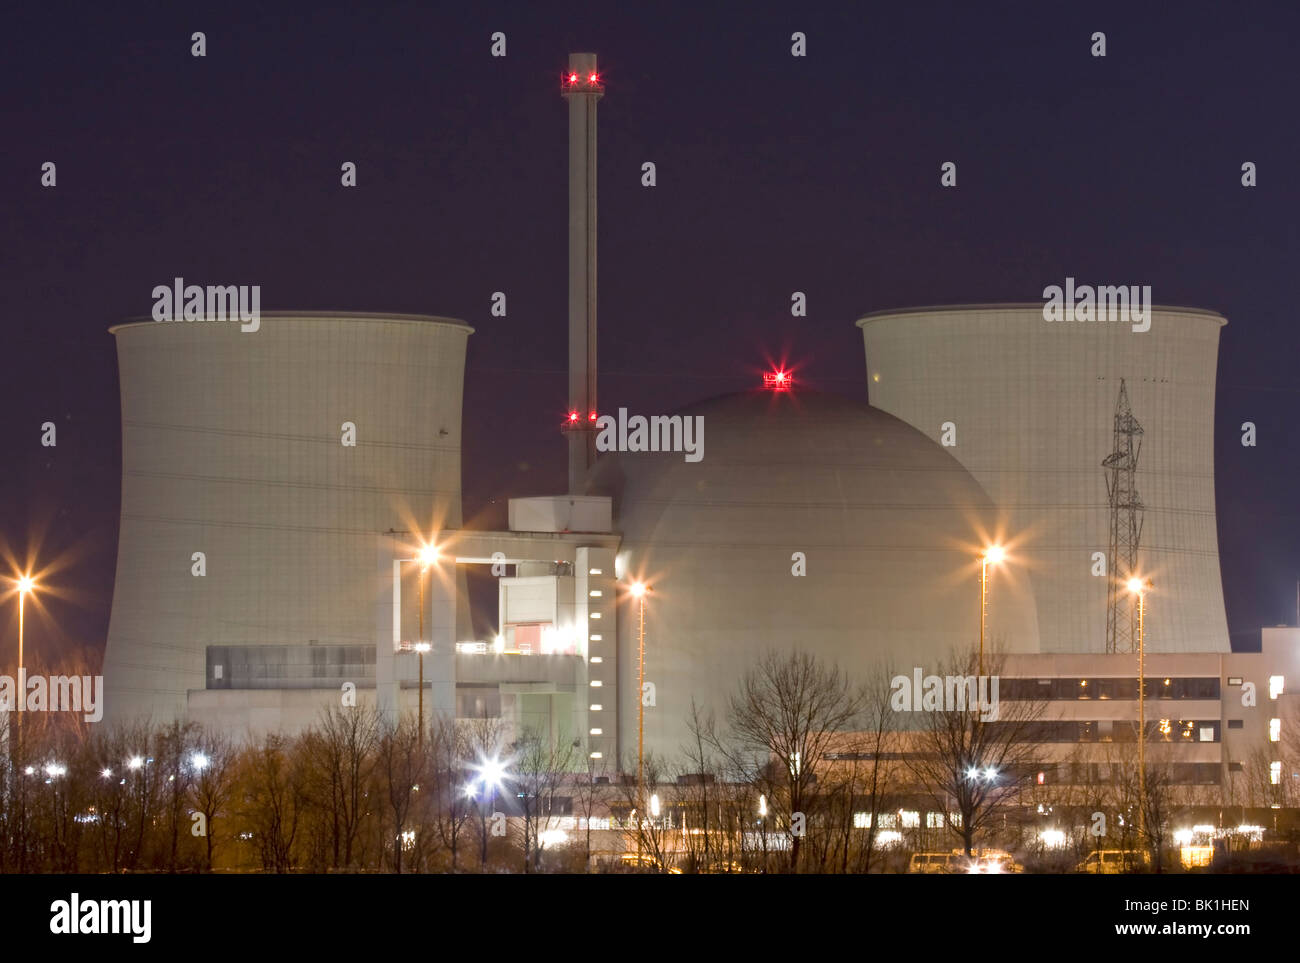 Nuclear power station at night - Stock Image